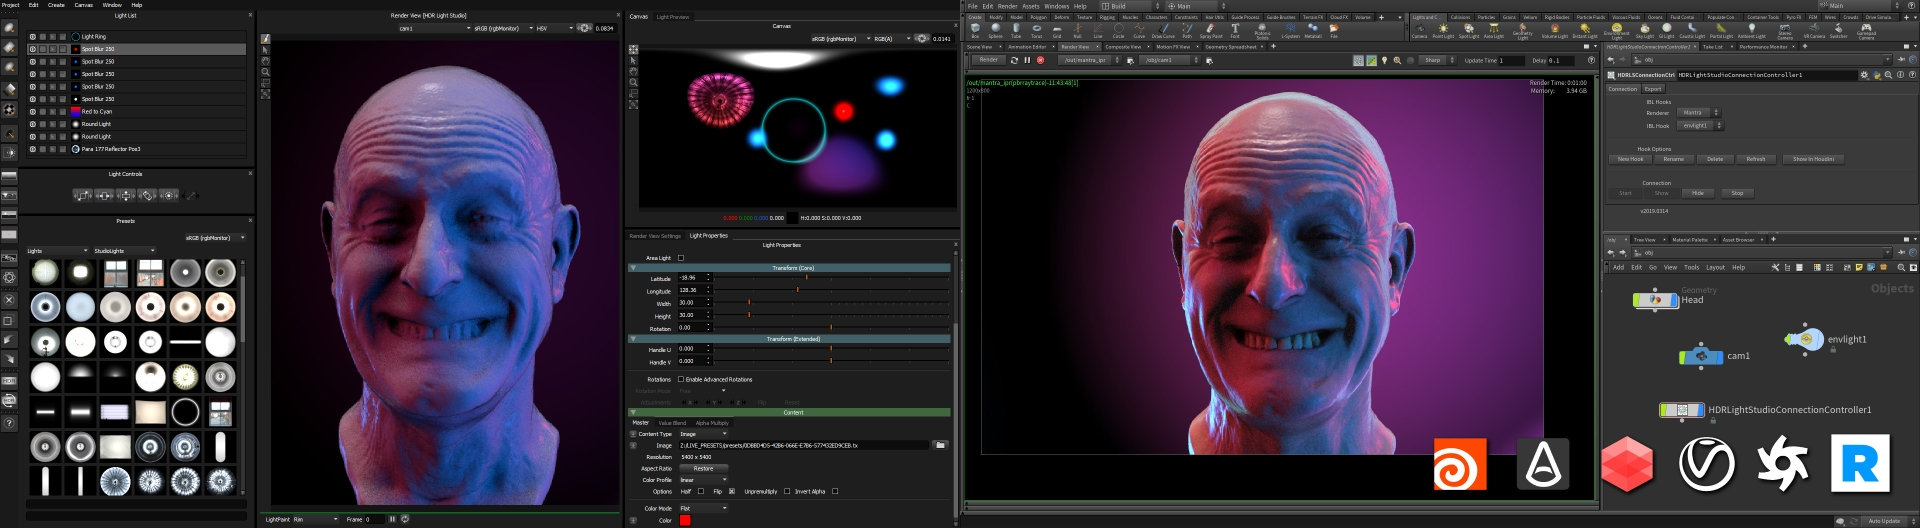 HDR Light Studio connected to Houdini